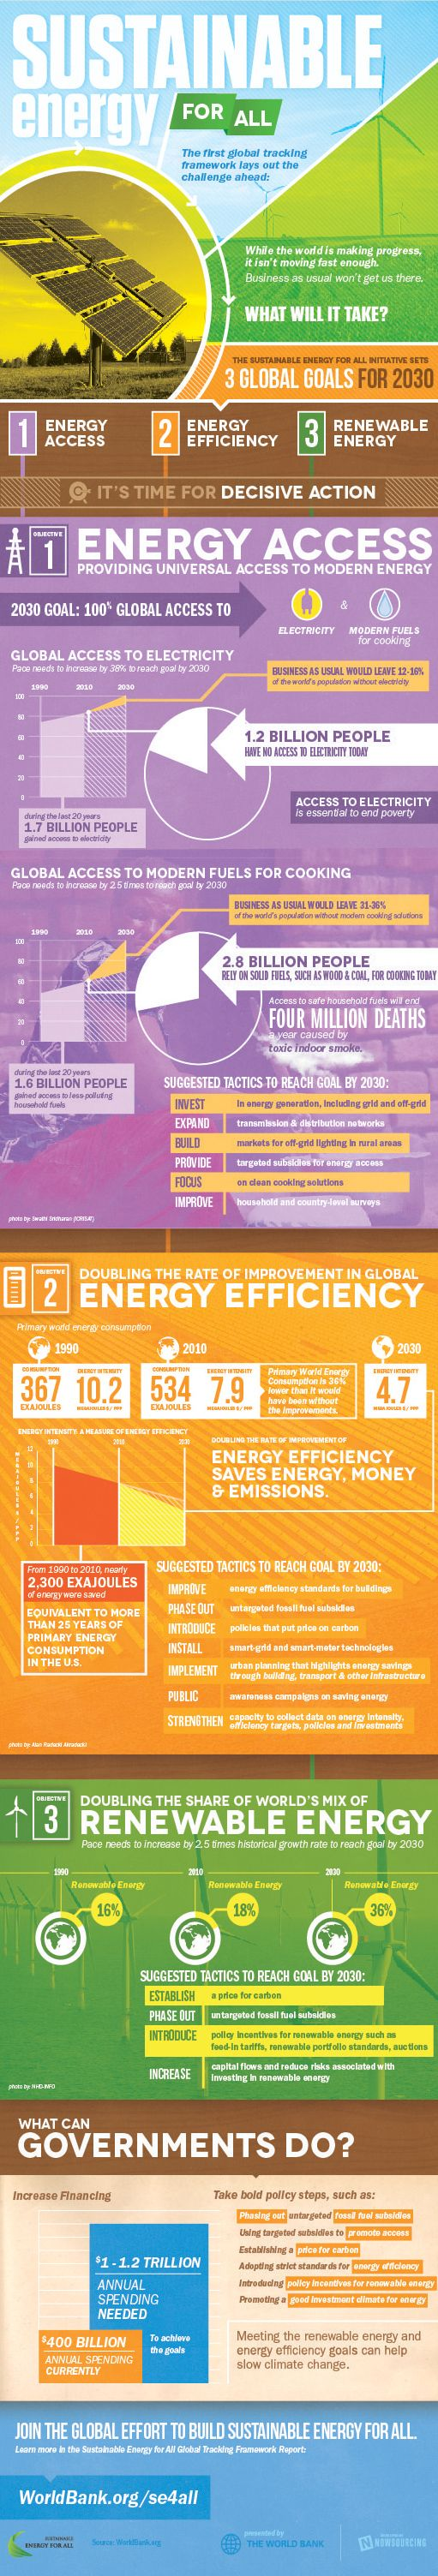 Infographic: Sustainable Energy for All - What Will It Take?